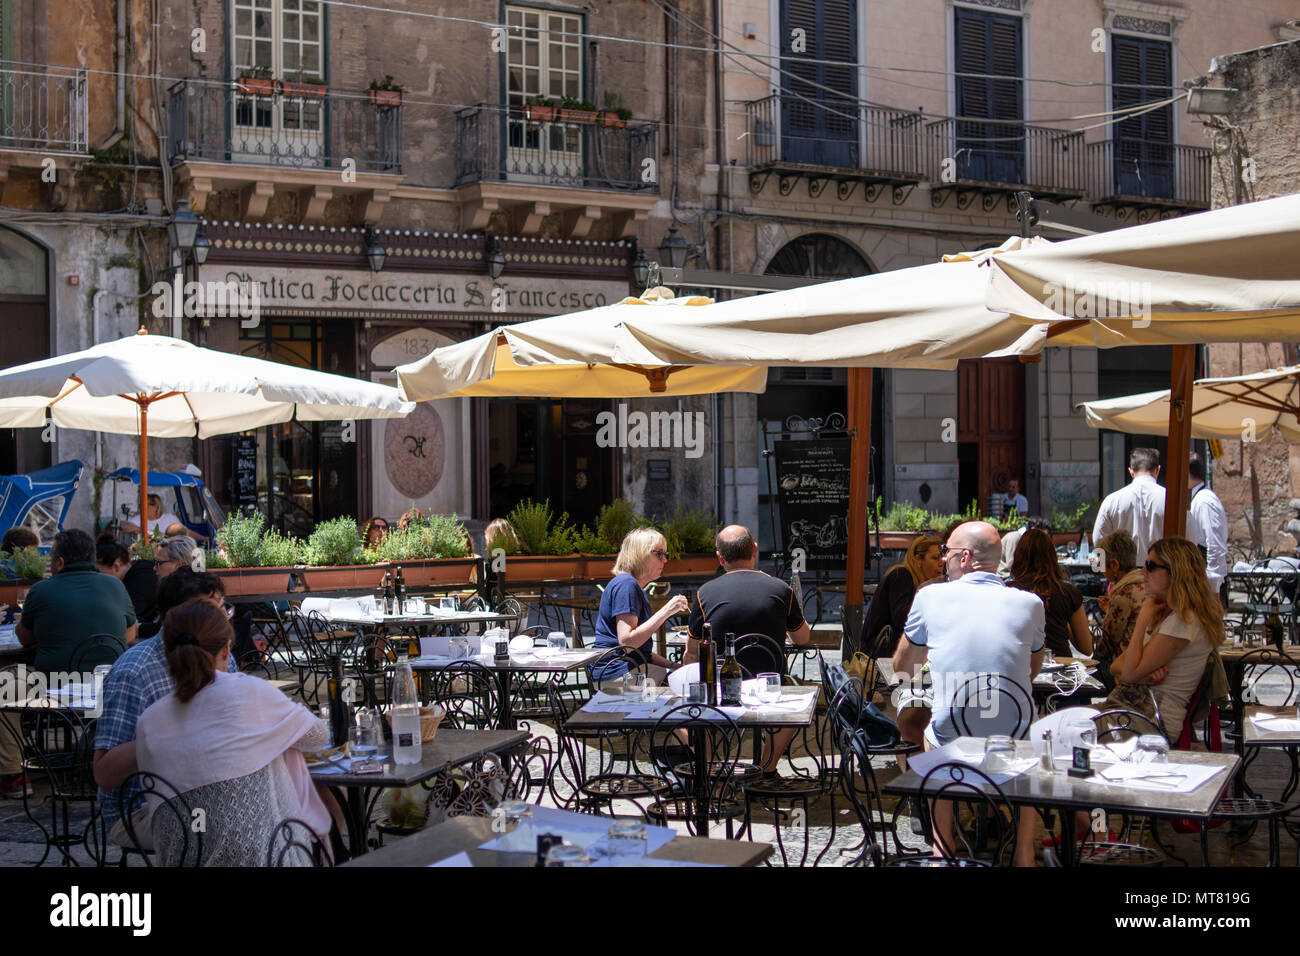 Palermo, Sicily, Italy - May 25, 2018: people dining outdoor on a sunny day at Antica Focacceria San Francesco, one of the city's oldest restaurants - Stock Image